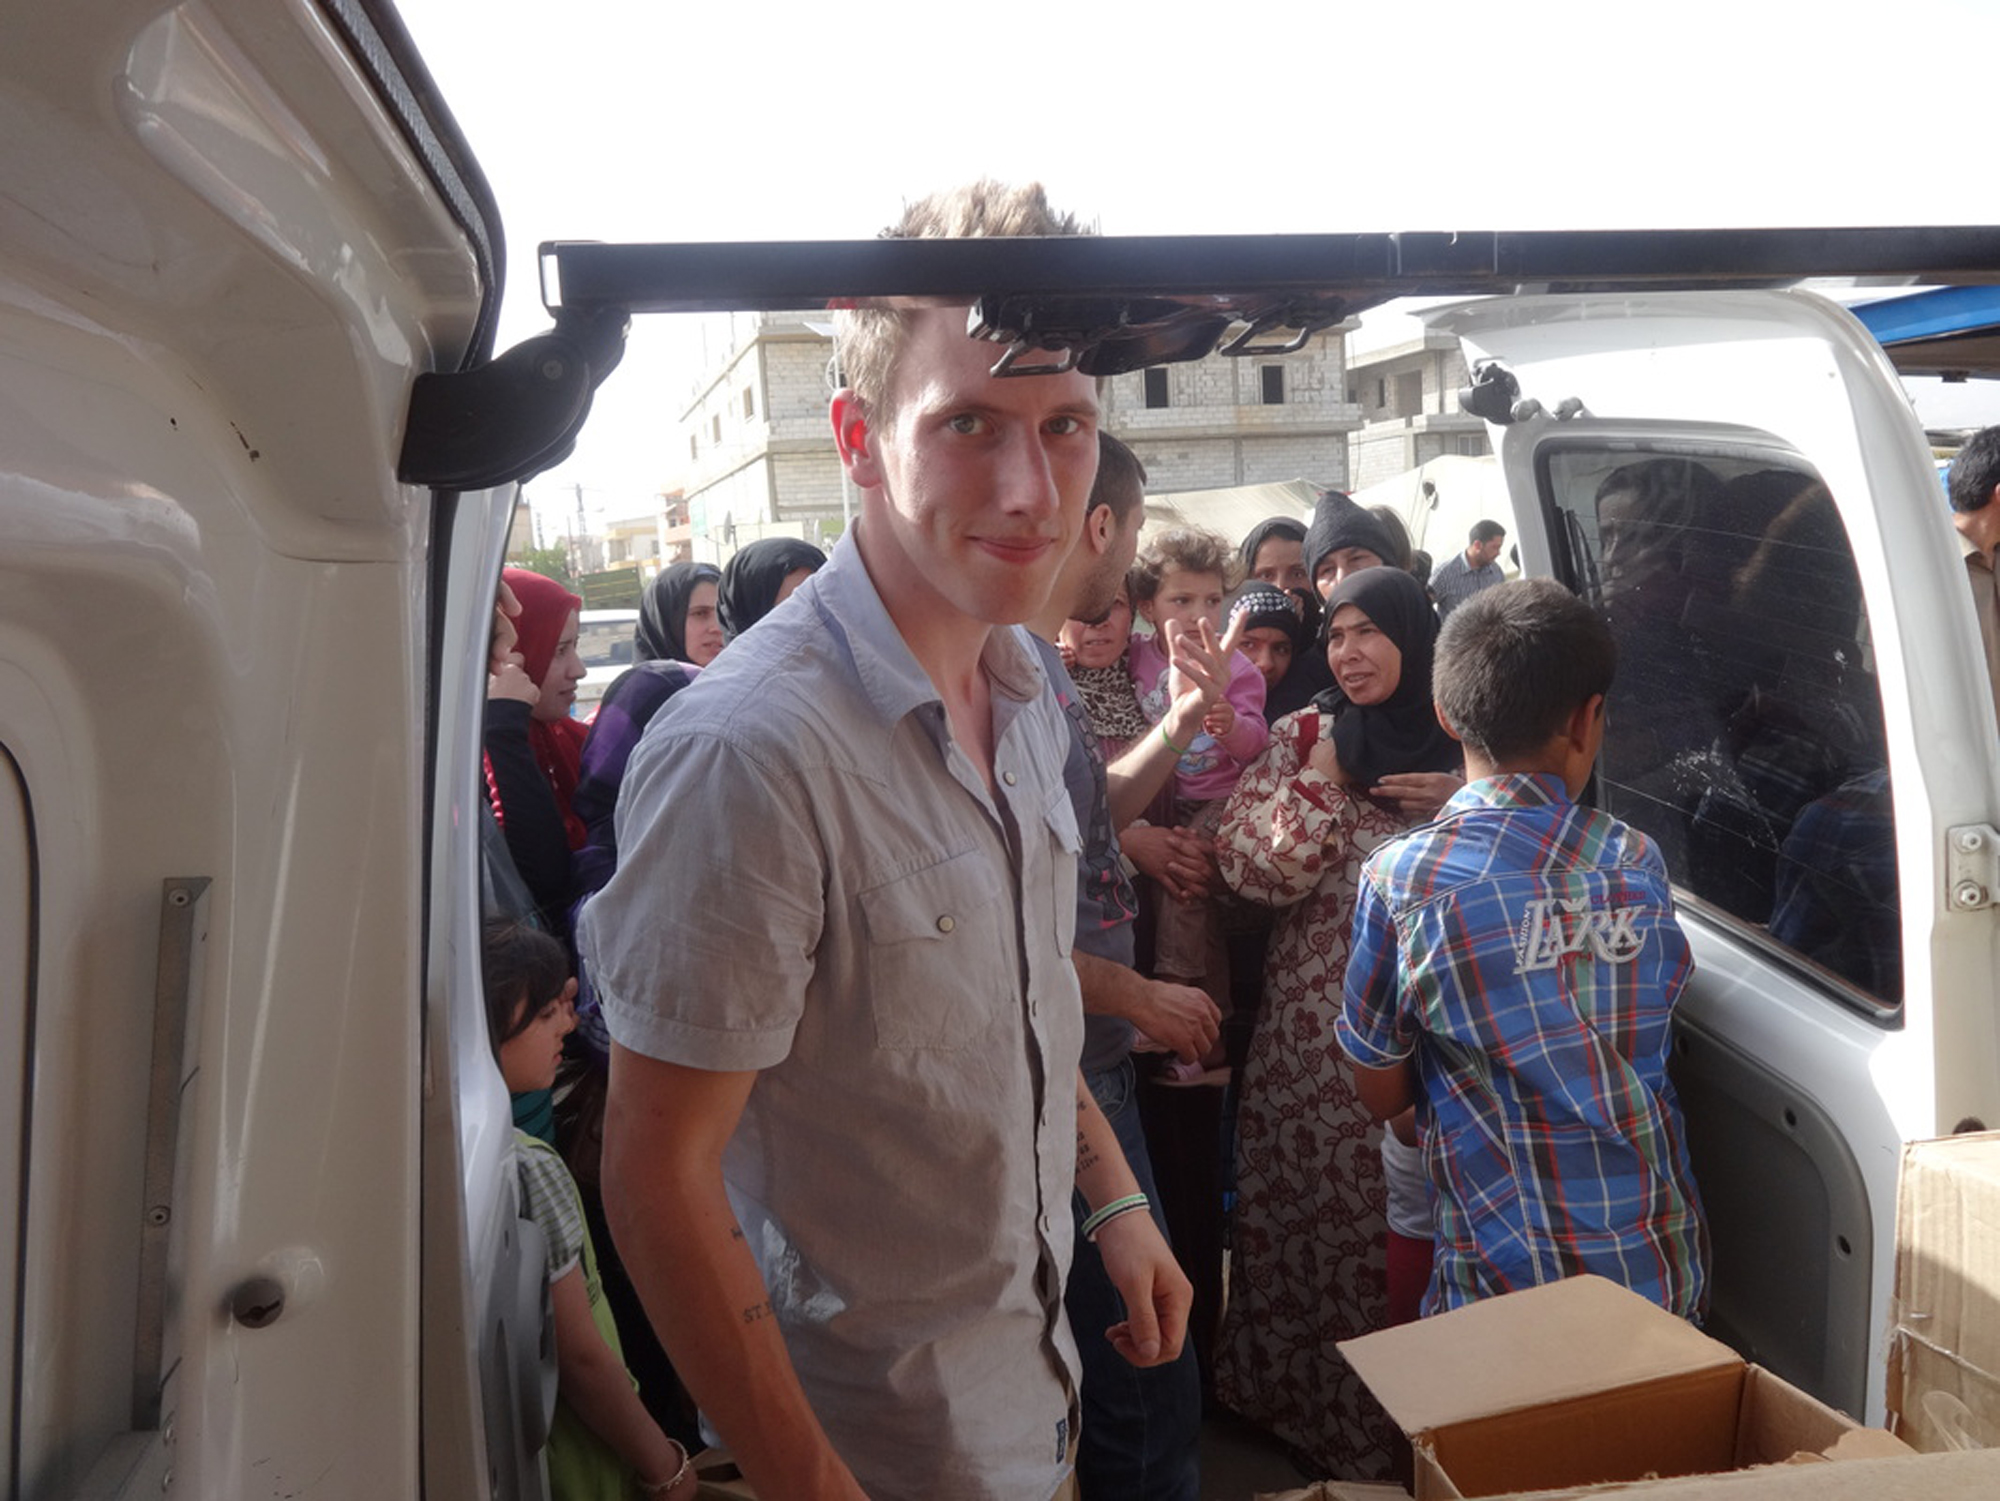 This undated photo provided by the Kassig Family shows Peter Kassig delivering supplies for Syrian refugees. A new graphic video purportedly produced by Islamic State militants in Syria released Sunday Nov. 16, 2014 claims U.S. aid worker Kassig was beheaded. (AP Photo/Courtesy Kassig Family)